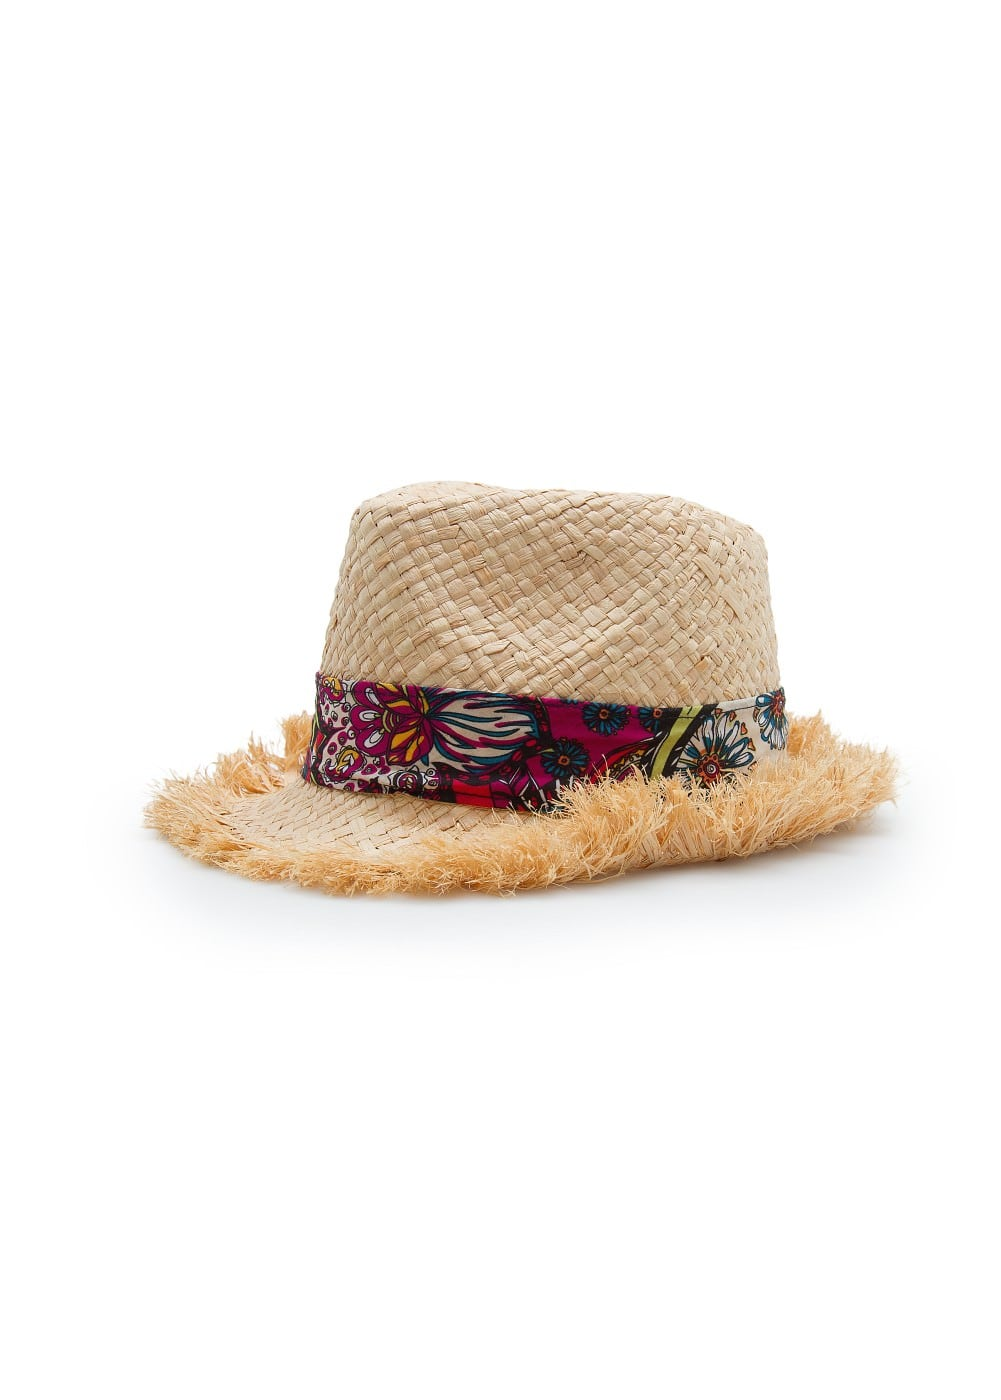 Tropical straw hat